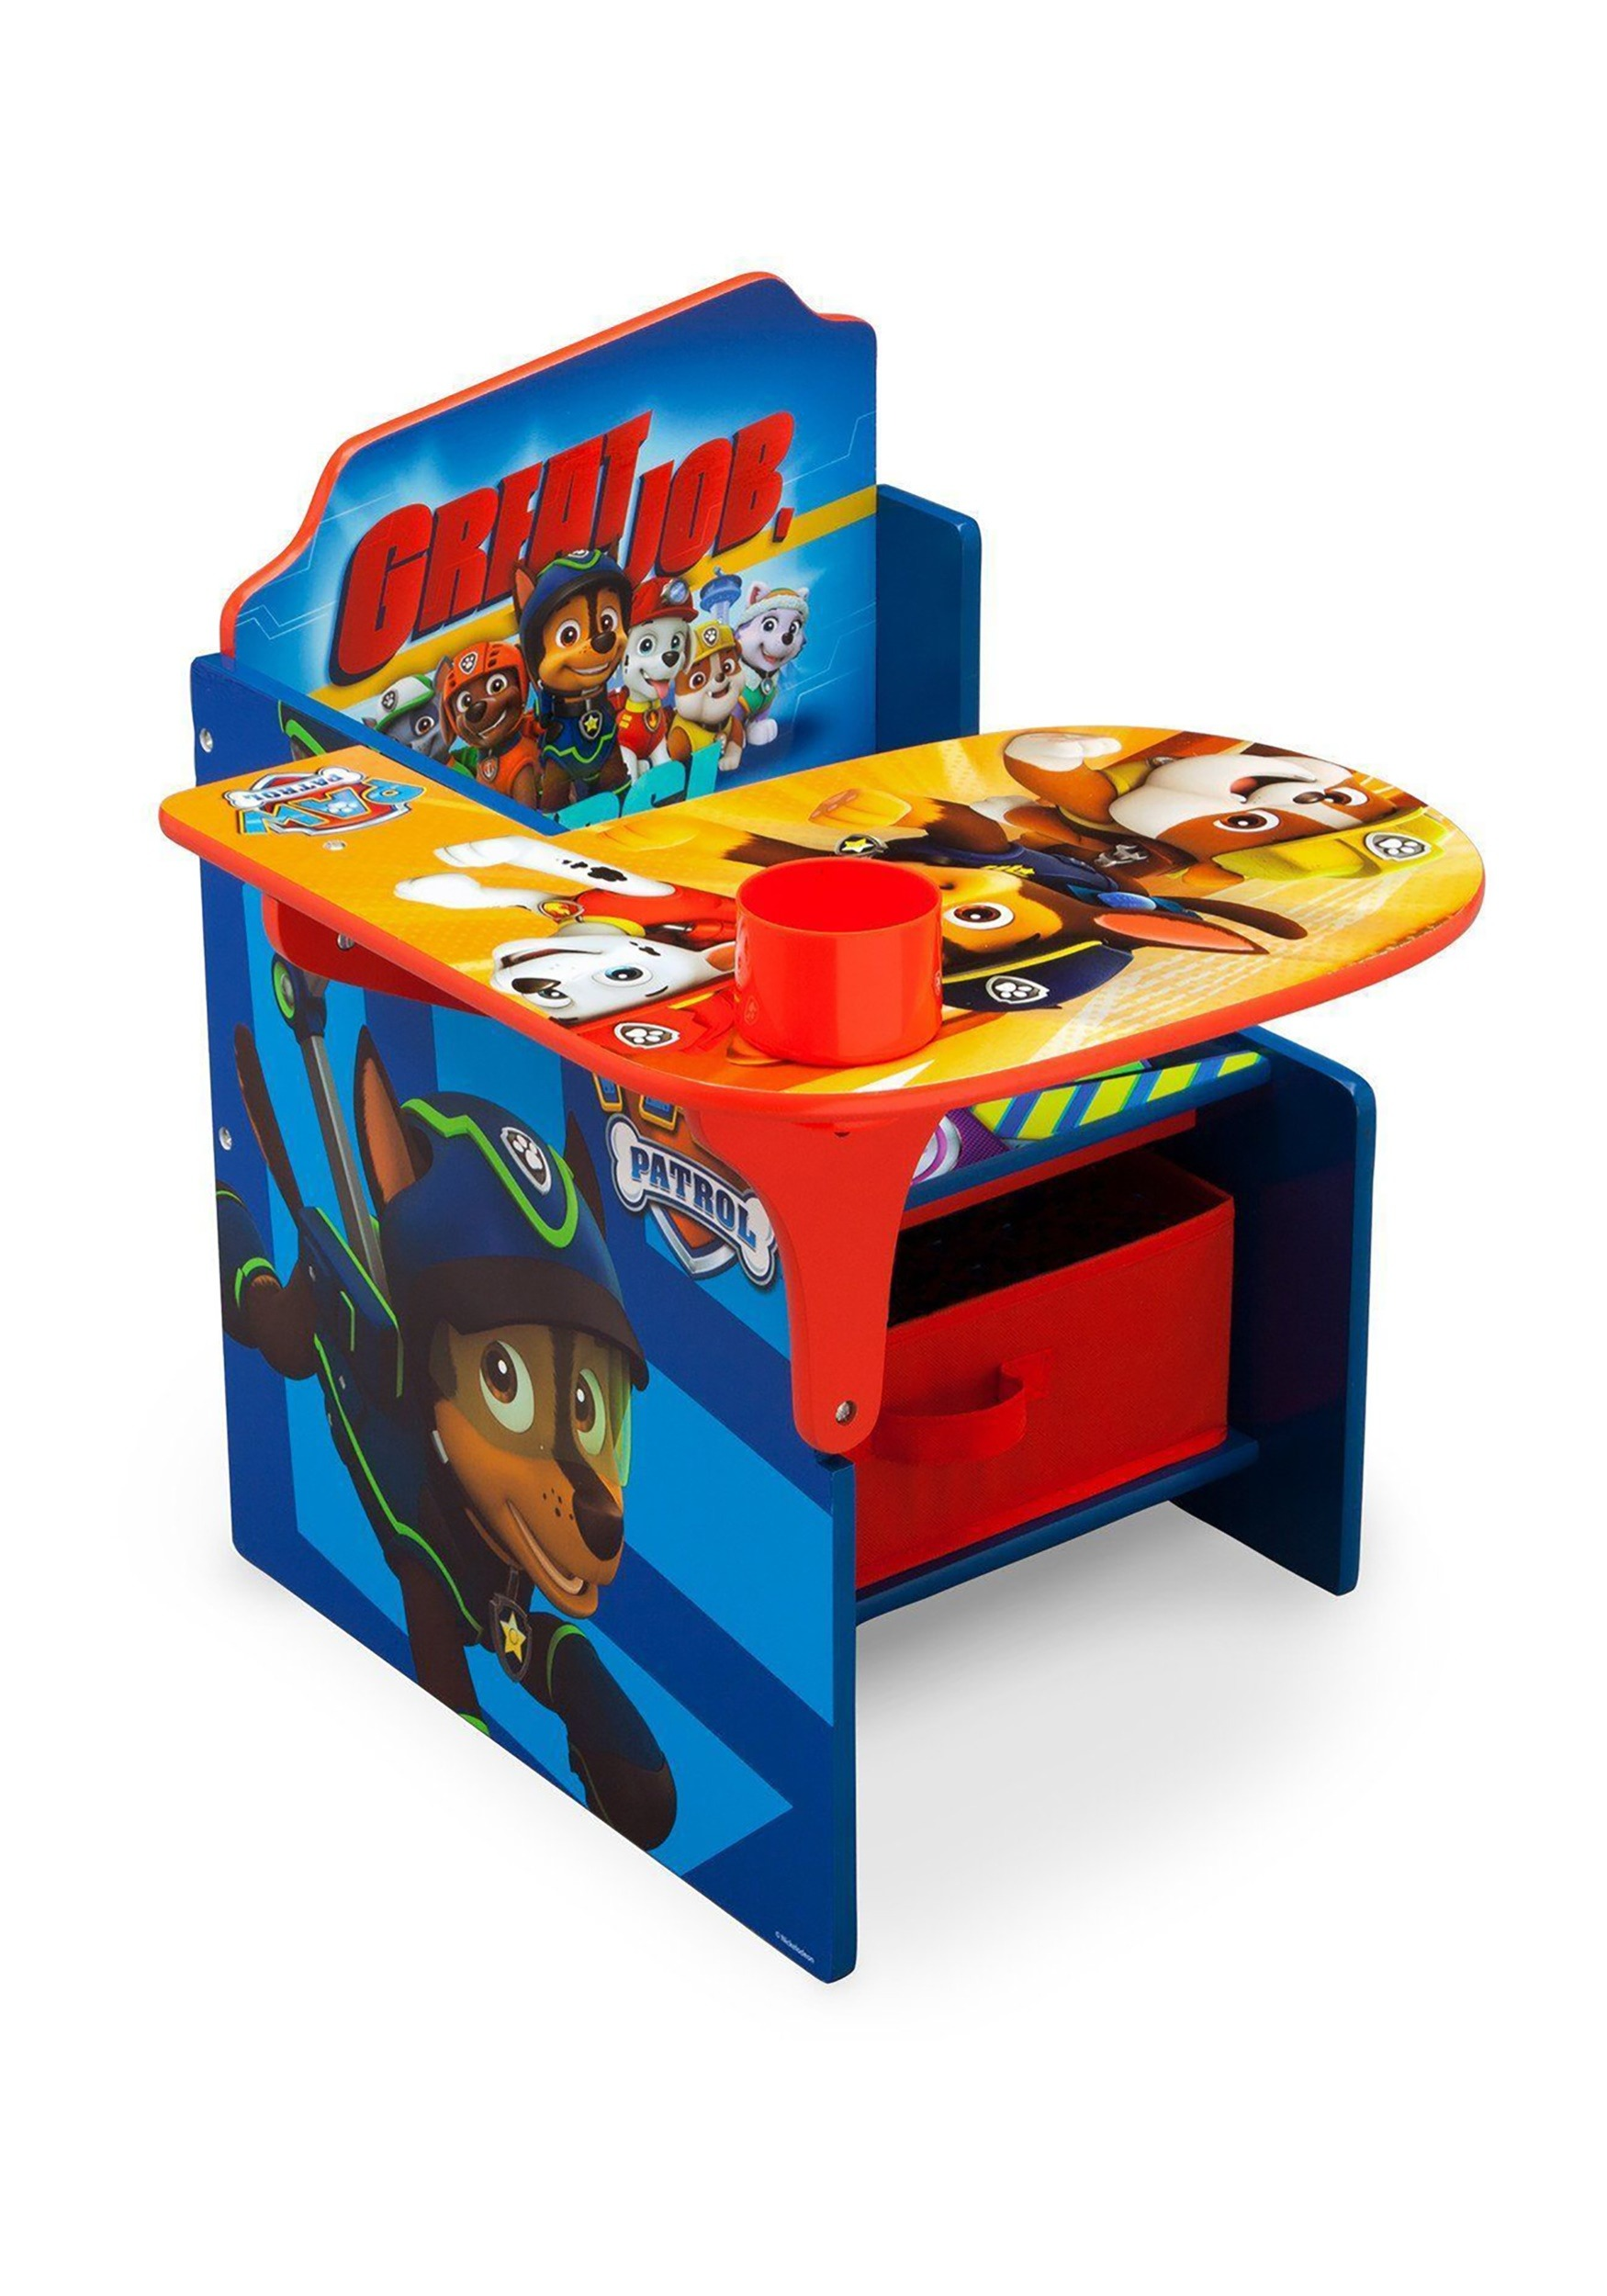 Paw Patrol Chair Desk With Storage Bin